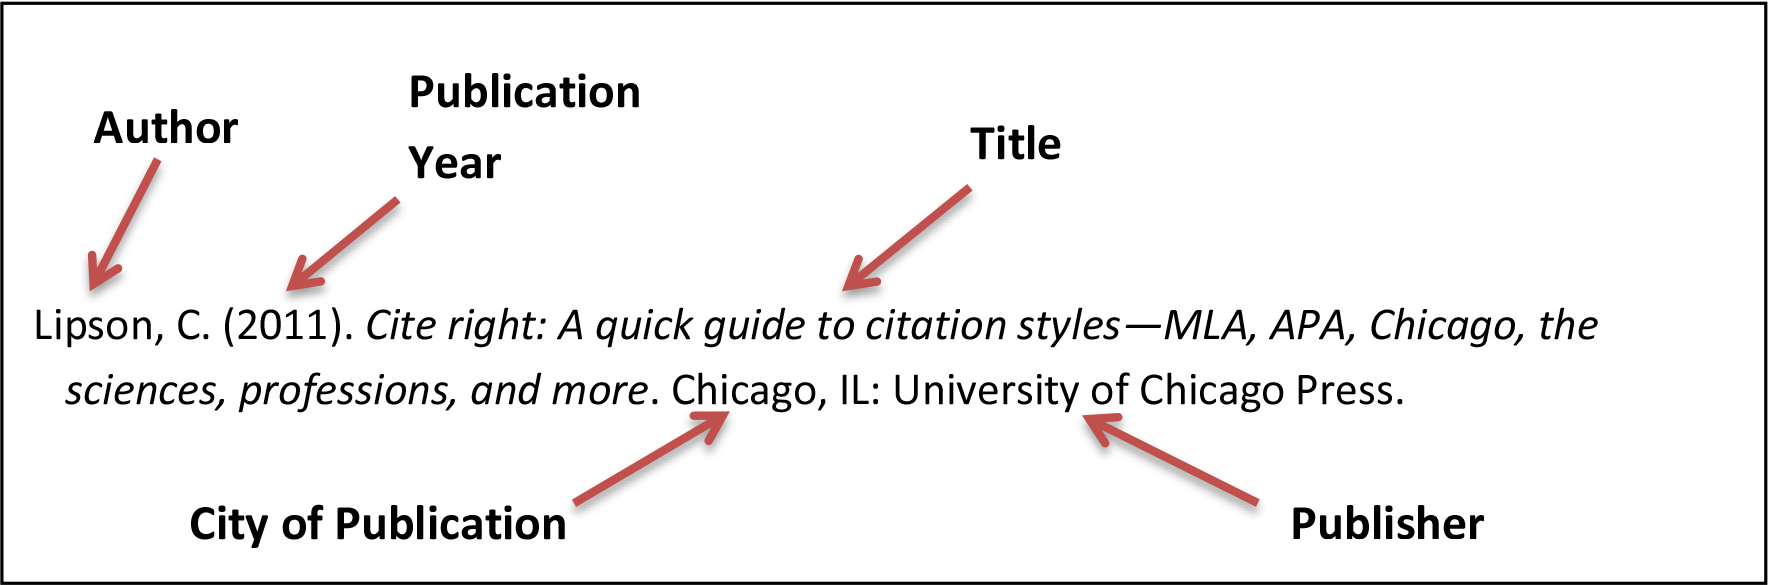 how do you cite a website in an essay apa These posts on the apa style blog will also be helpful: how to cite something you found on a website in apa style missing pieces: how to write an apa style reference even without all the information.